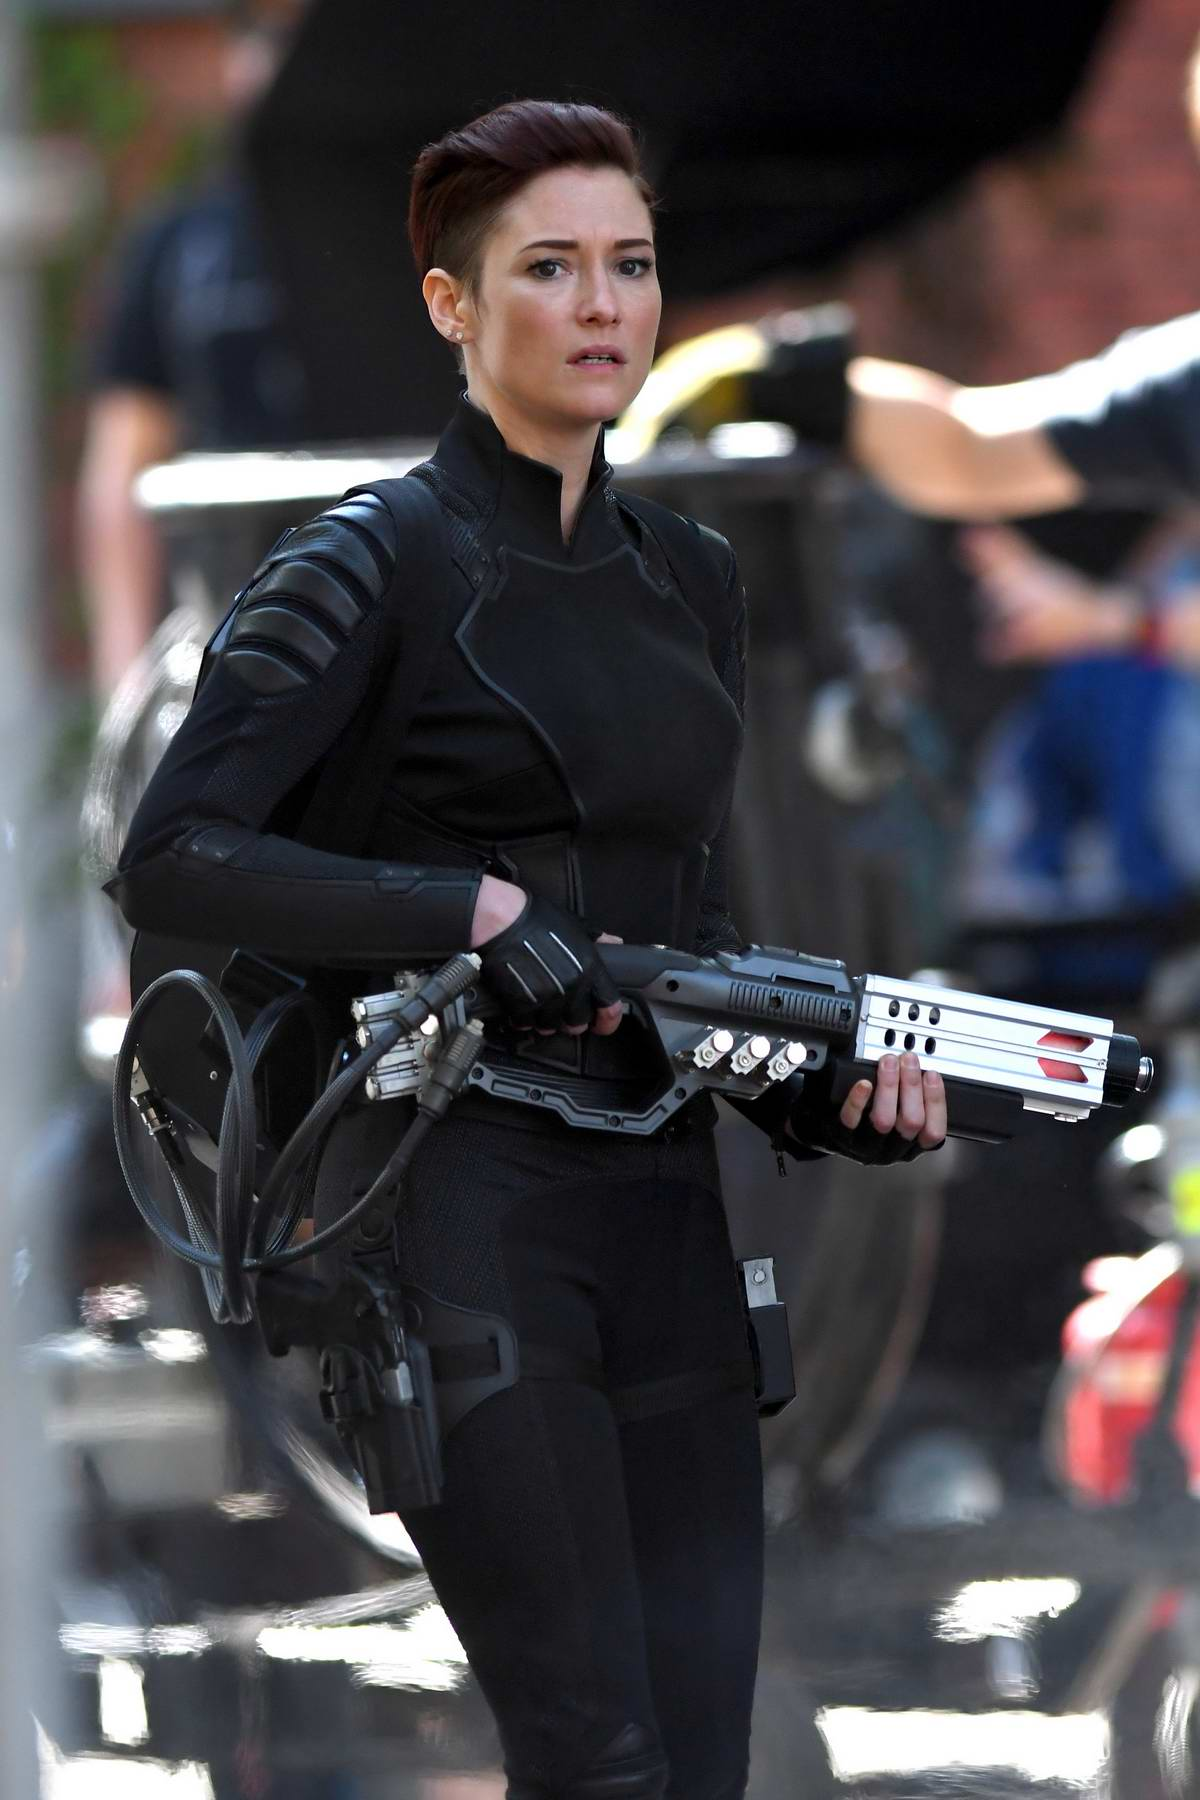 Chyler Leigh seen in her costume while filming some action scenes on the set of 'Supergirl' in Vancouver, Canada